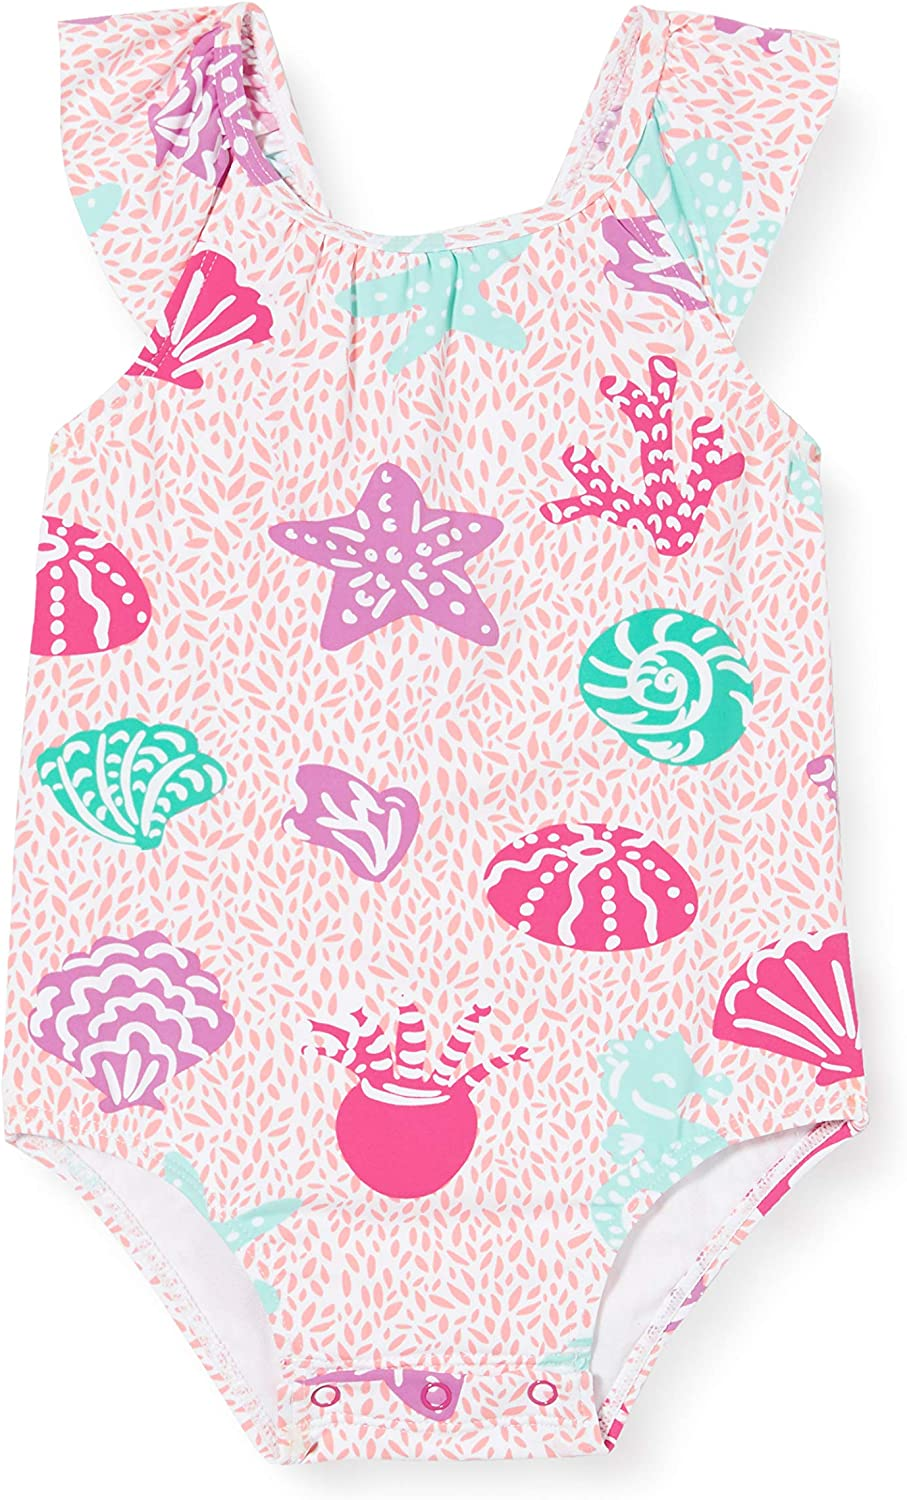 Hatley Surprise price Girls' 2021new shipping free shipping Swimsuit Ruffle